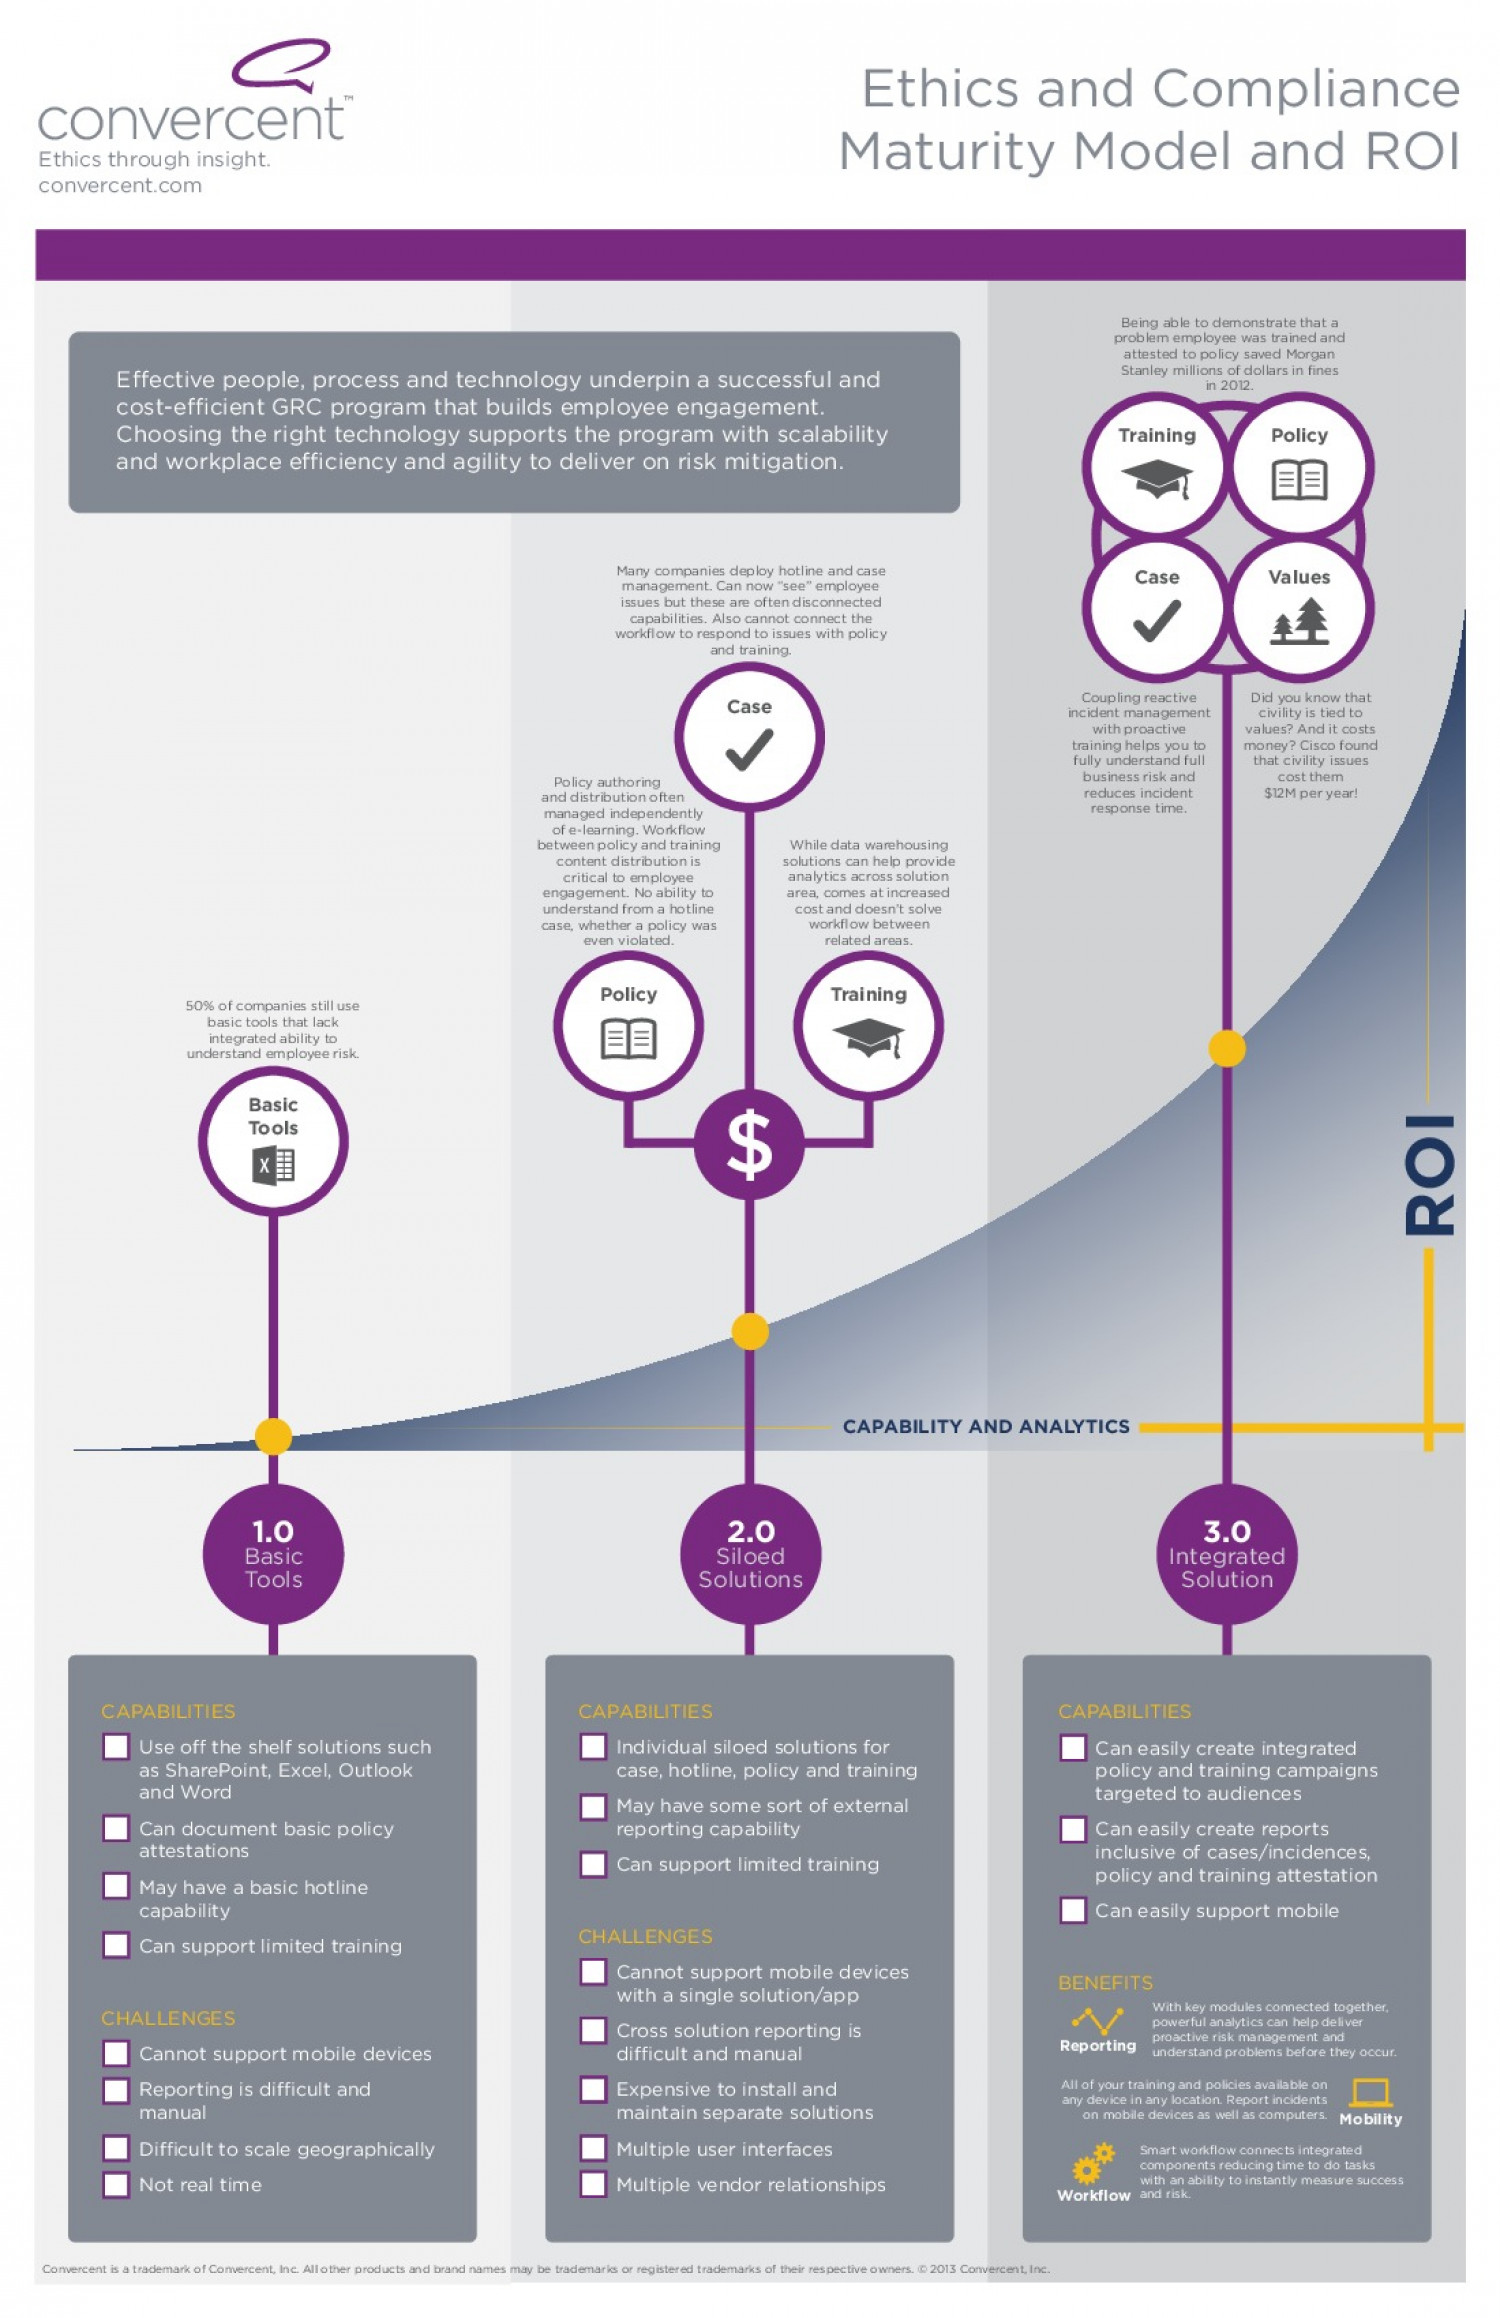 Ethics and Compliance - Maturity Model and ROI Infographic